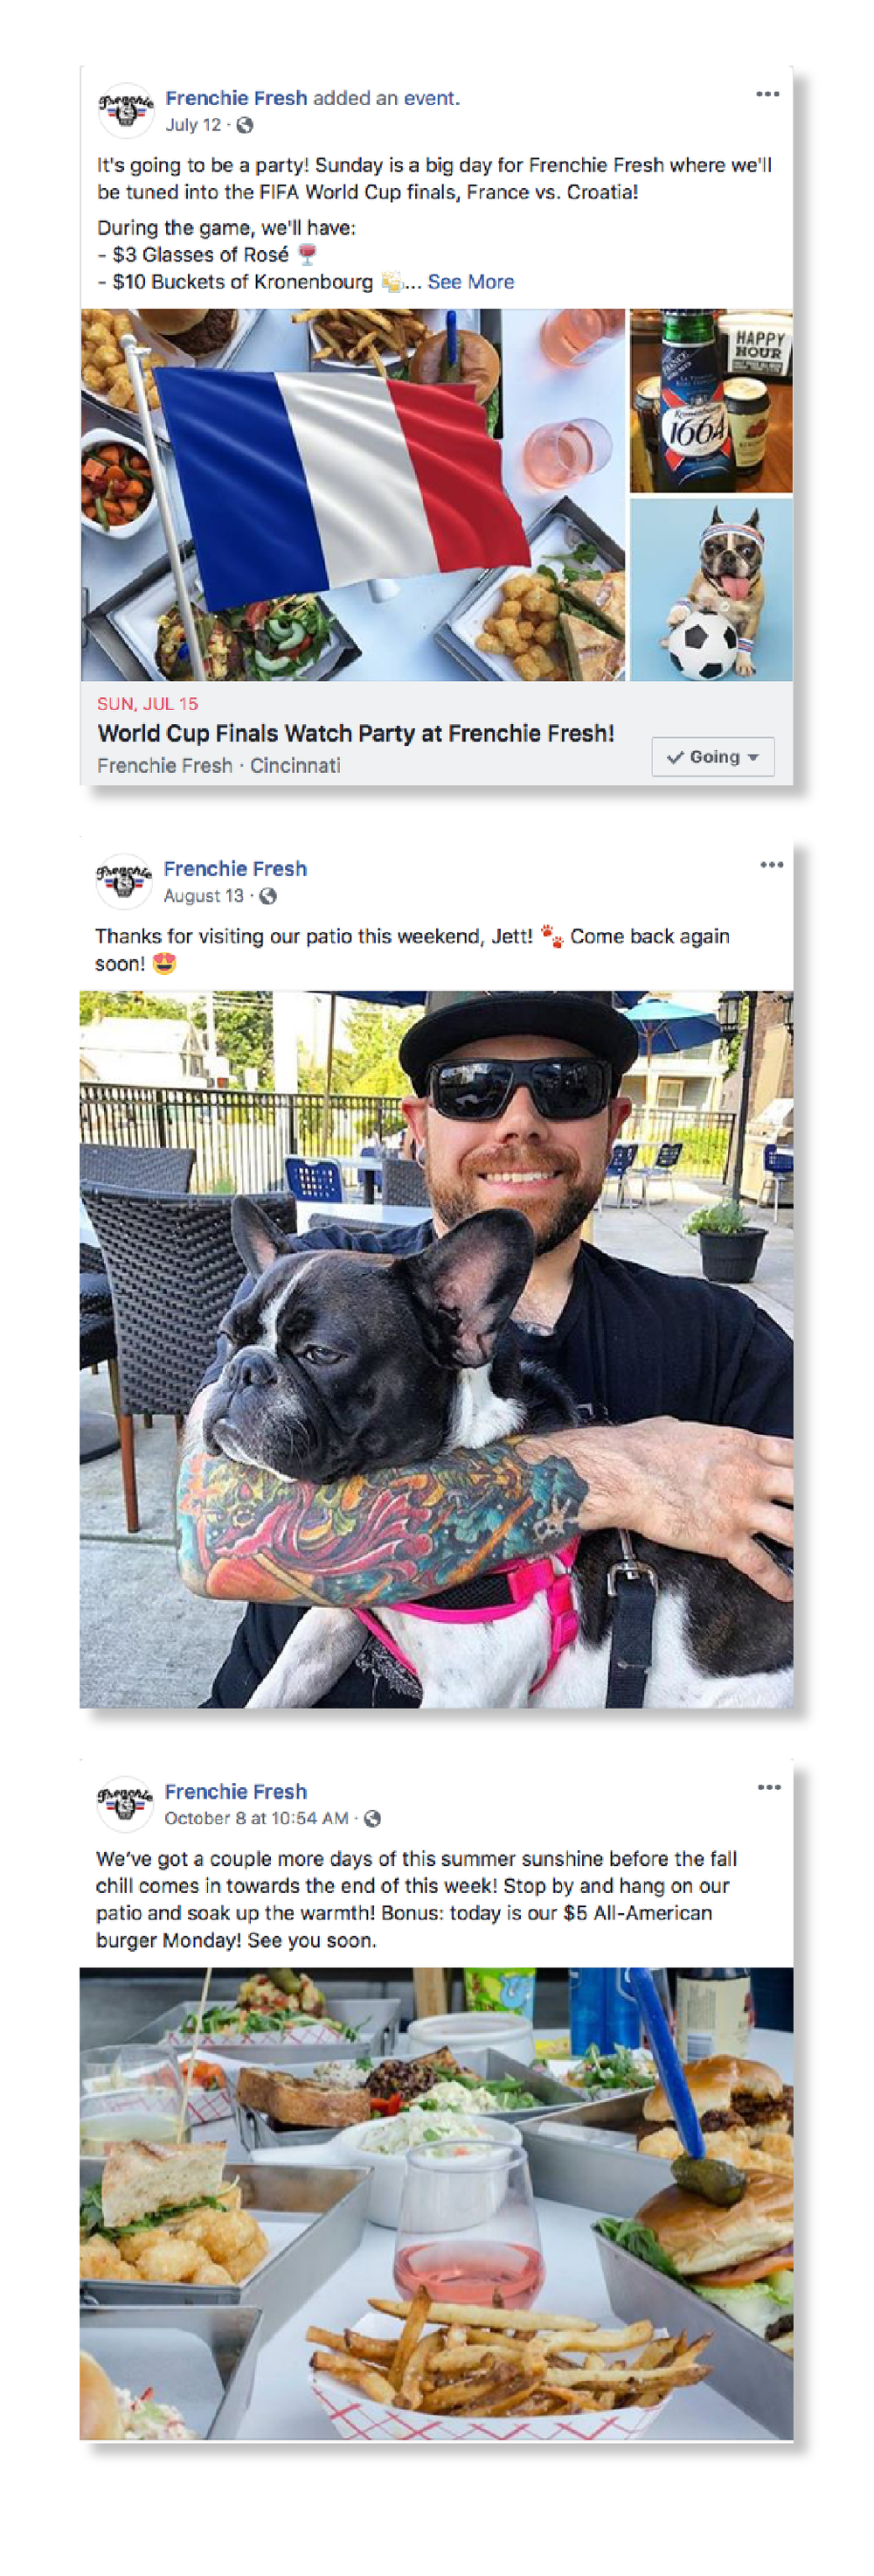 social_posts_frenchiefresh-01.png